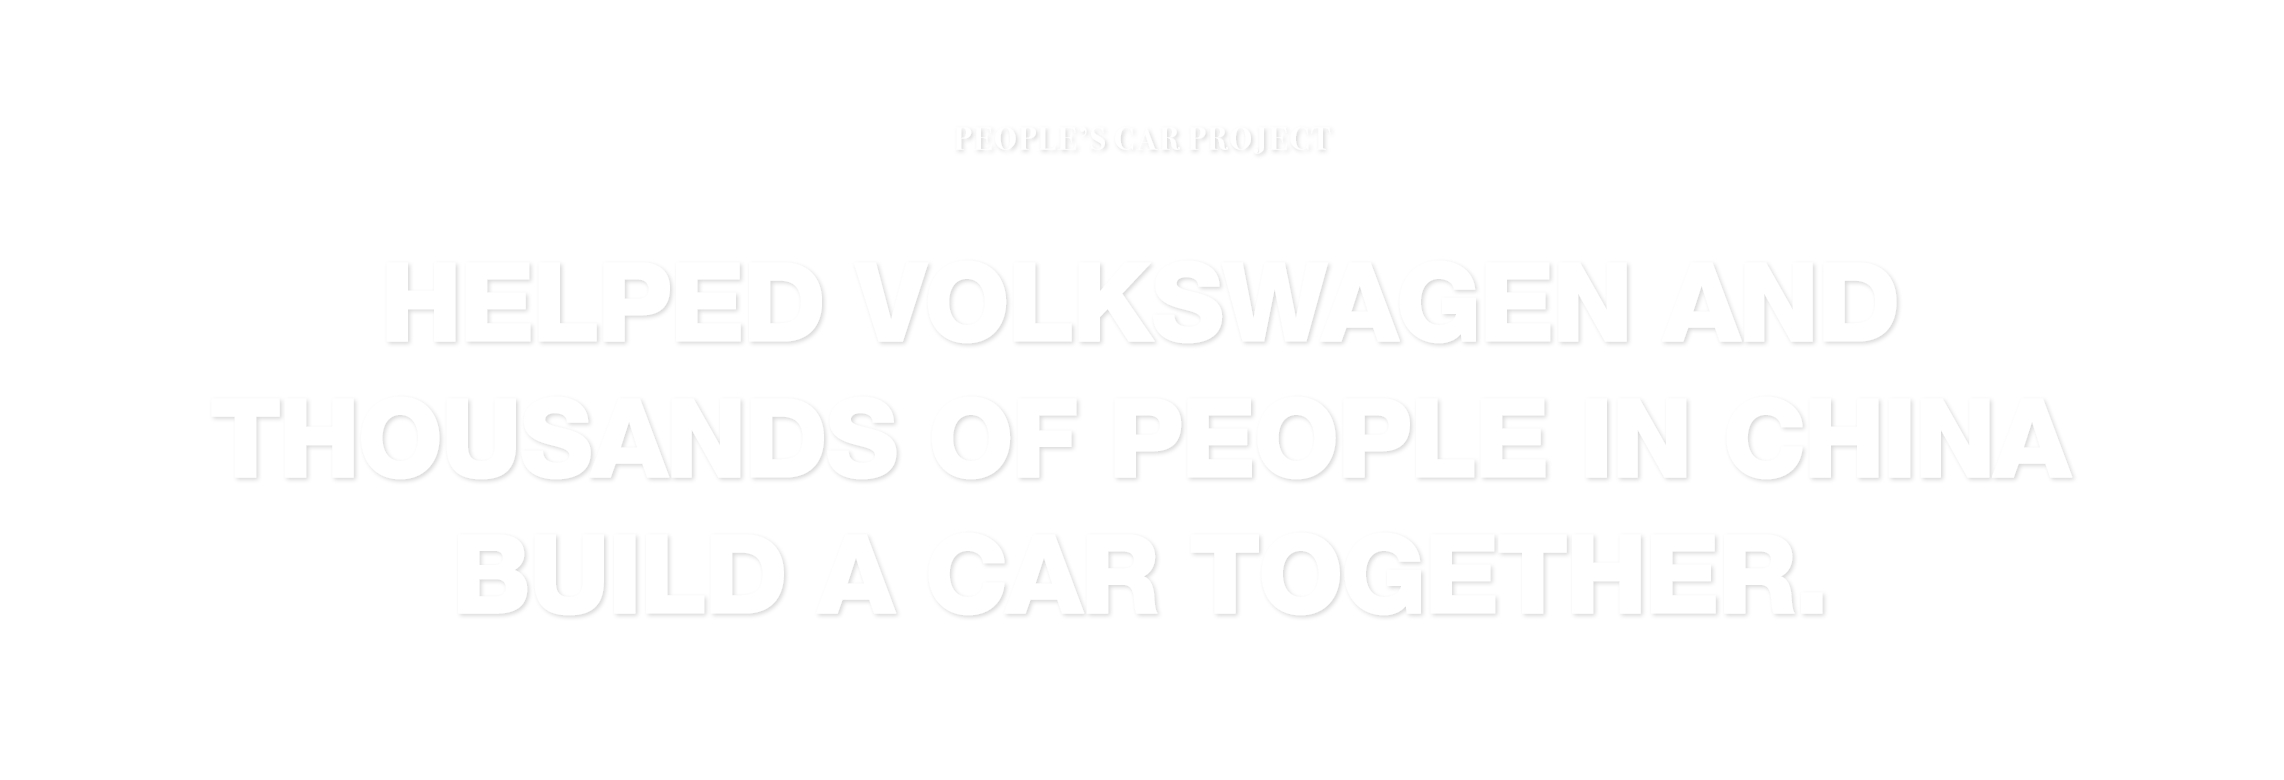 Volkswagen – The People's Car Project